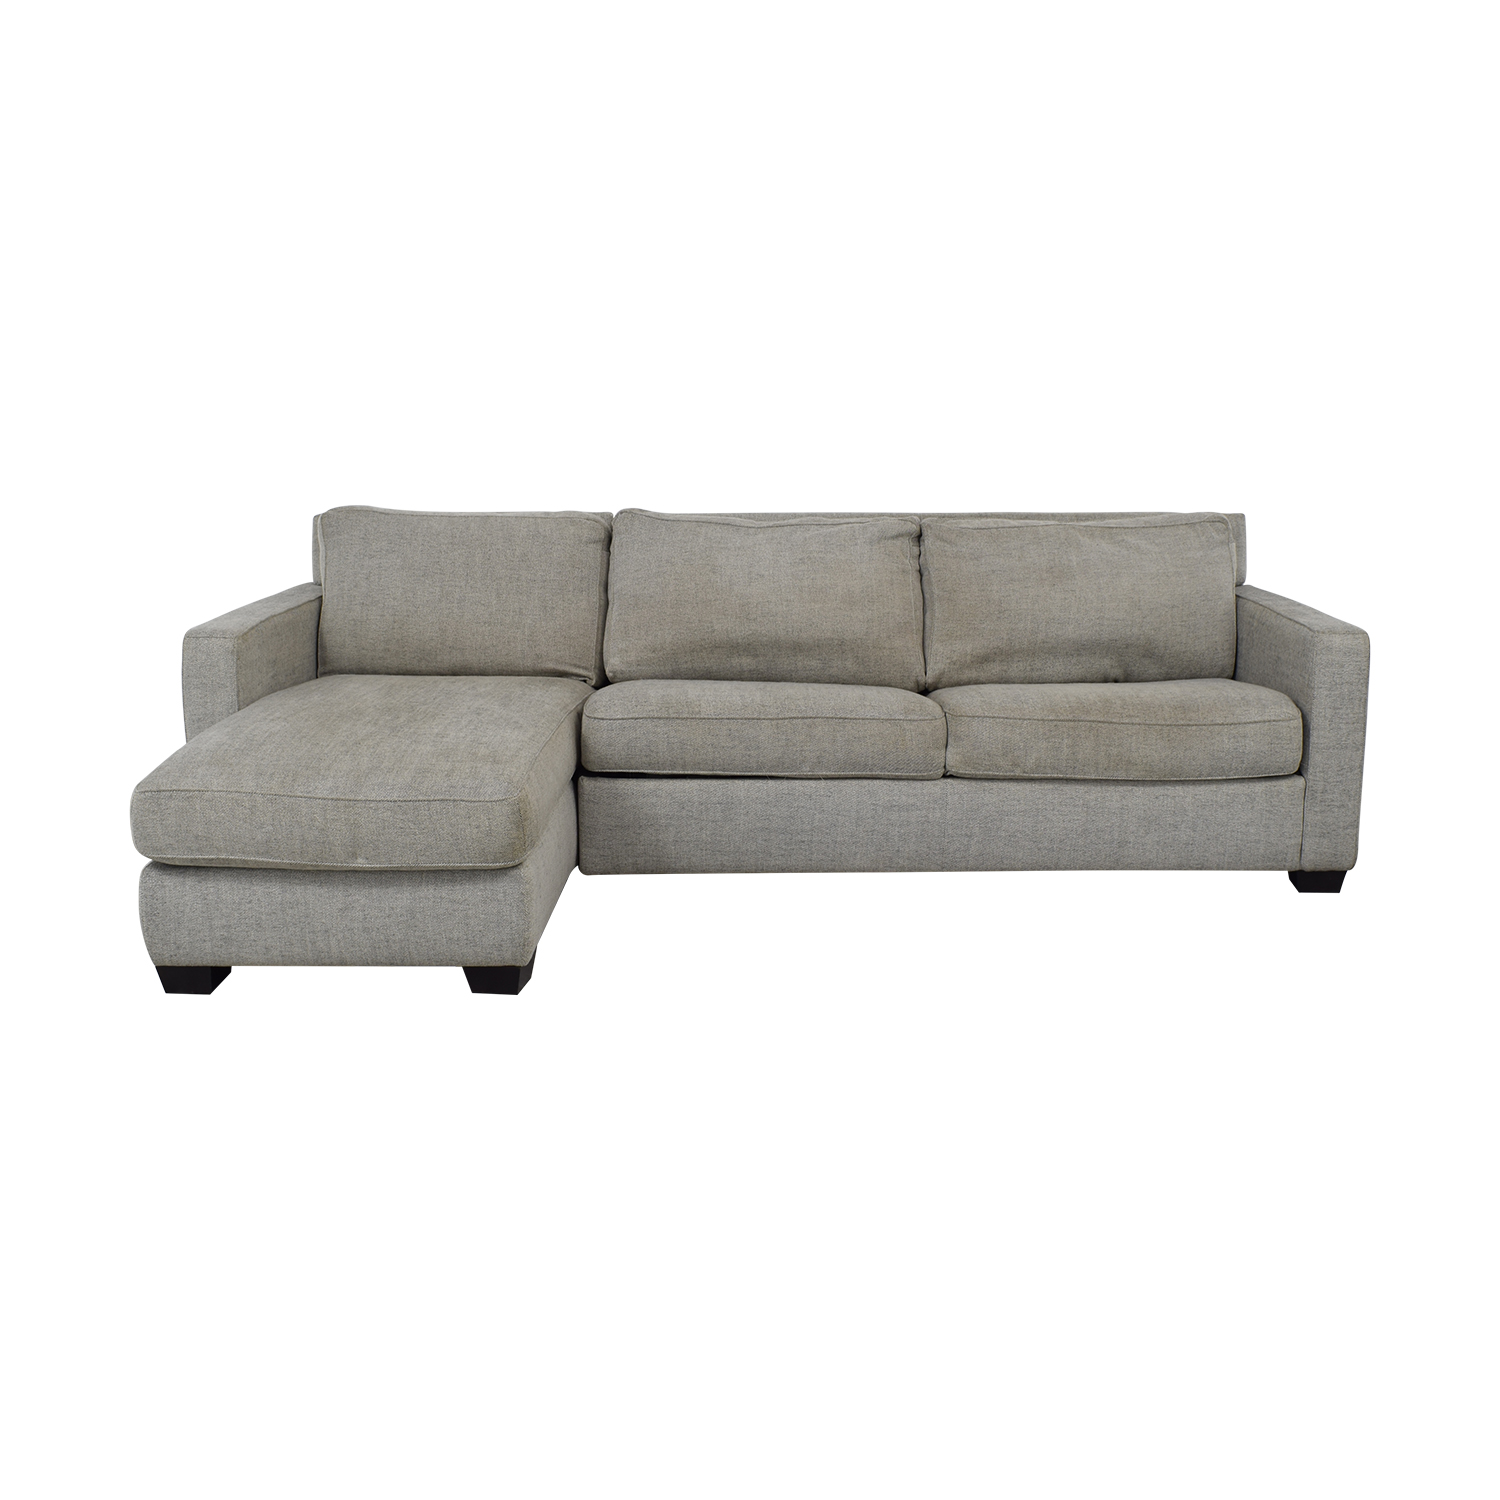 West Elm West Elm Henry Sleeper Sectional Sofa with Storage nj